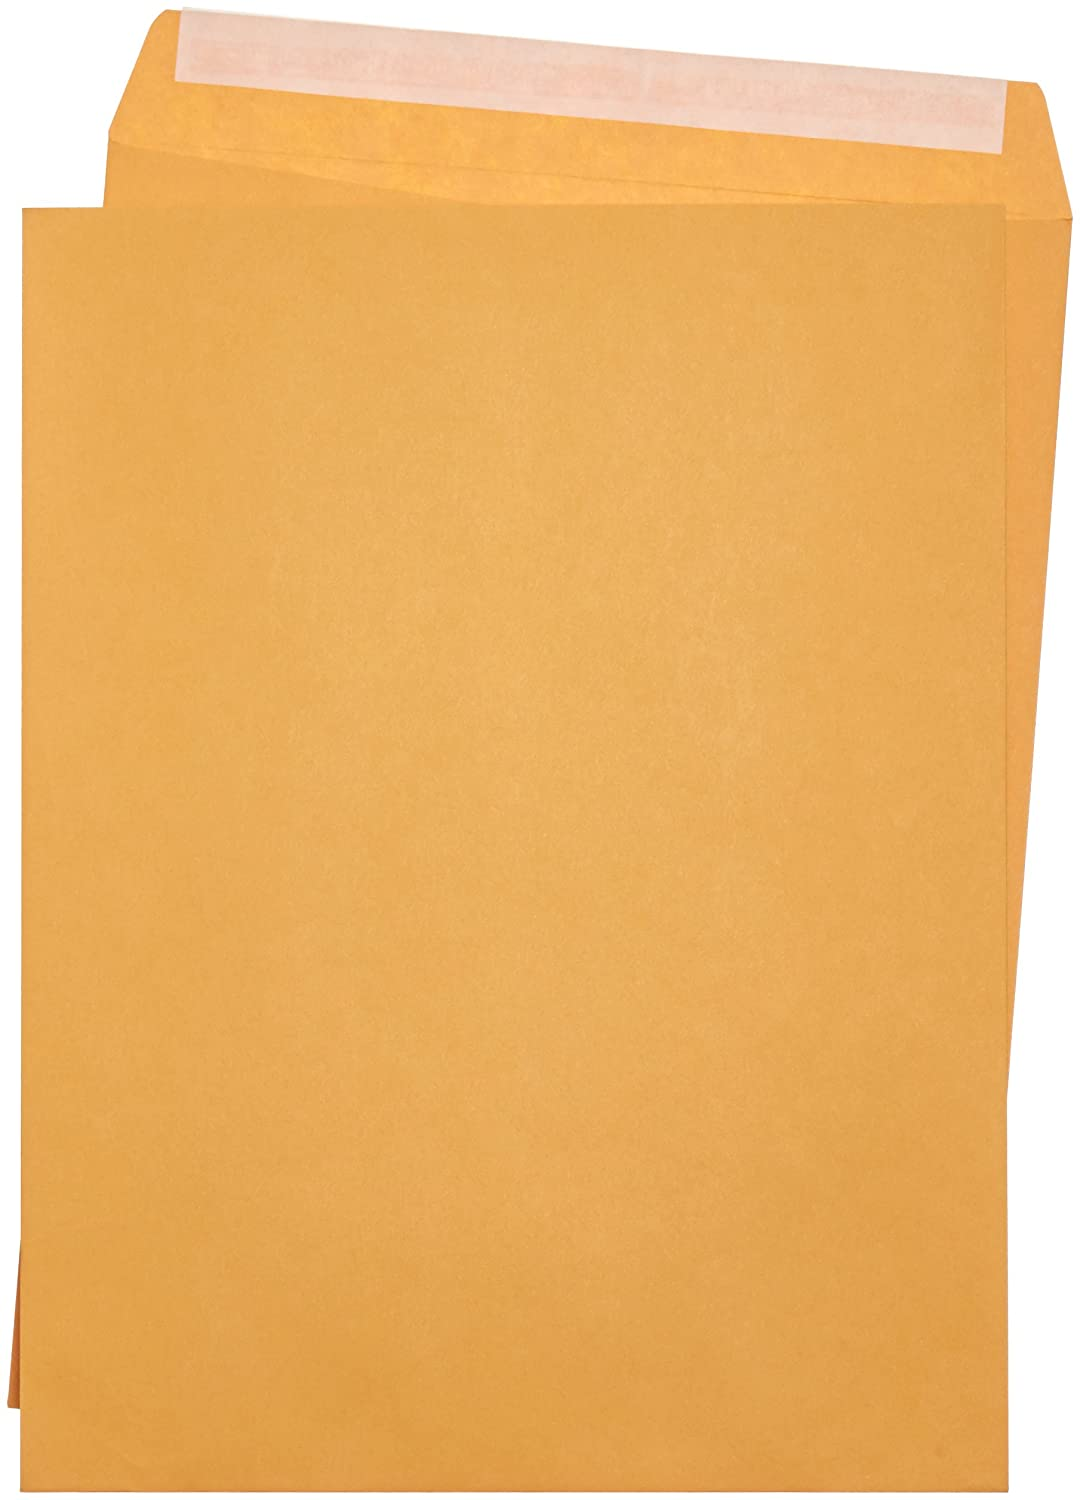 AmazonBasics Catalog Envelopes, Peel & Seal, 10 x 13 Inch, Brown Kraft, 250-Pack